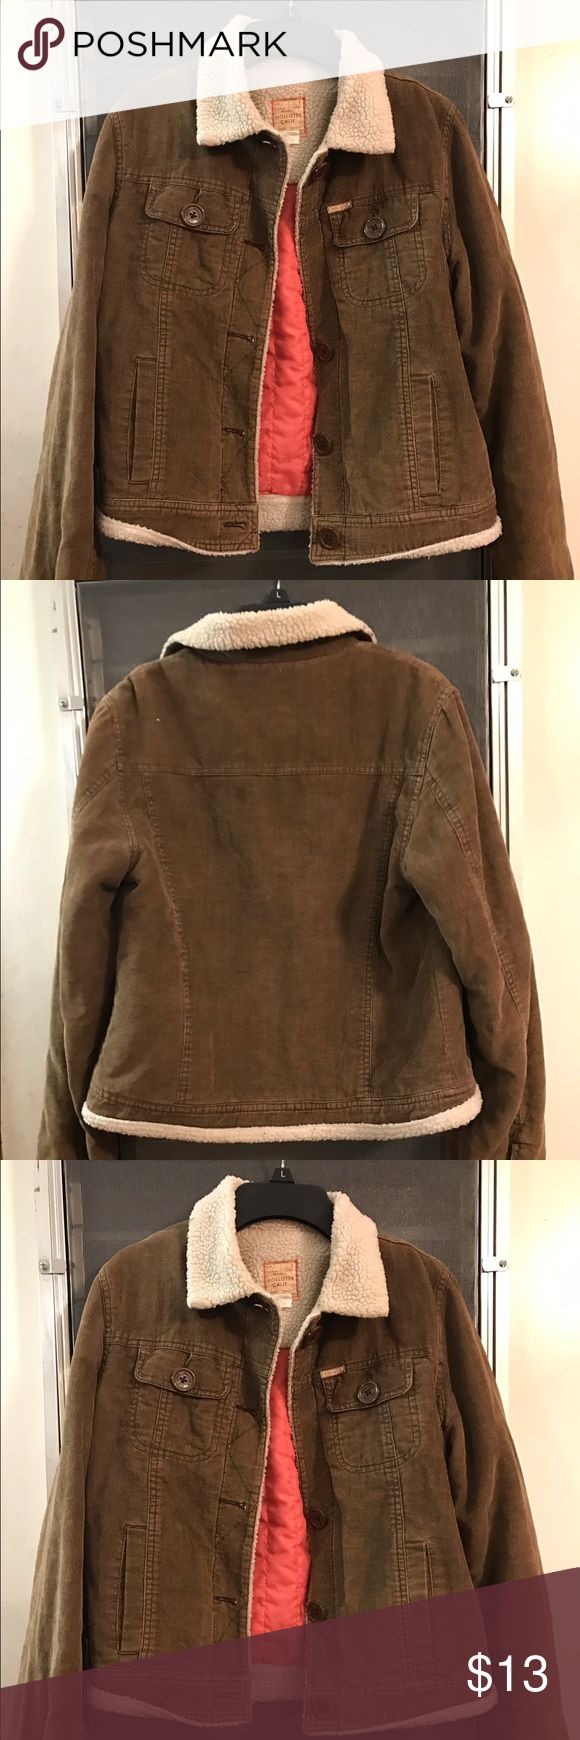 Hollister jacket Faux shearling and corduroy jacket. Pre owned in good condition. Prices to sell. Hollister Jackets & Coats